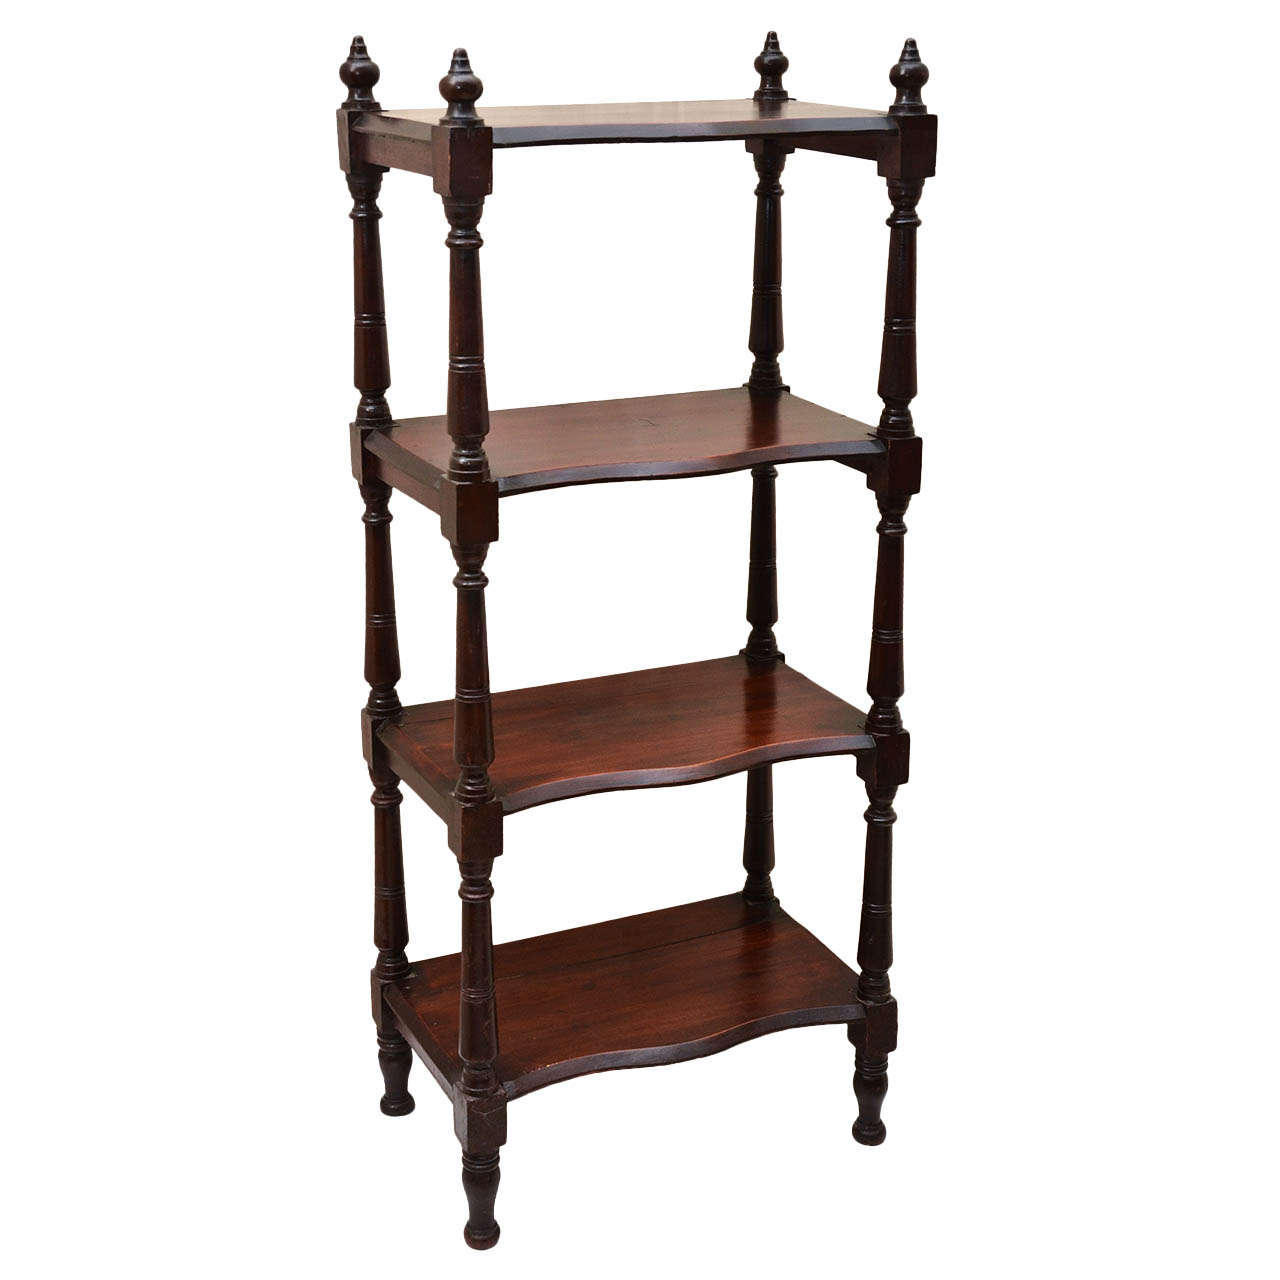 english victorian four tier etagere with serpentine shaped shelves at 1stdibs. Black Bedroom Furniture Sets. Home Design Ideas